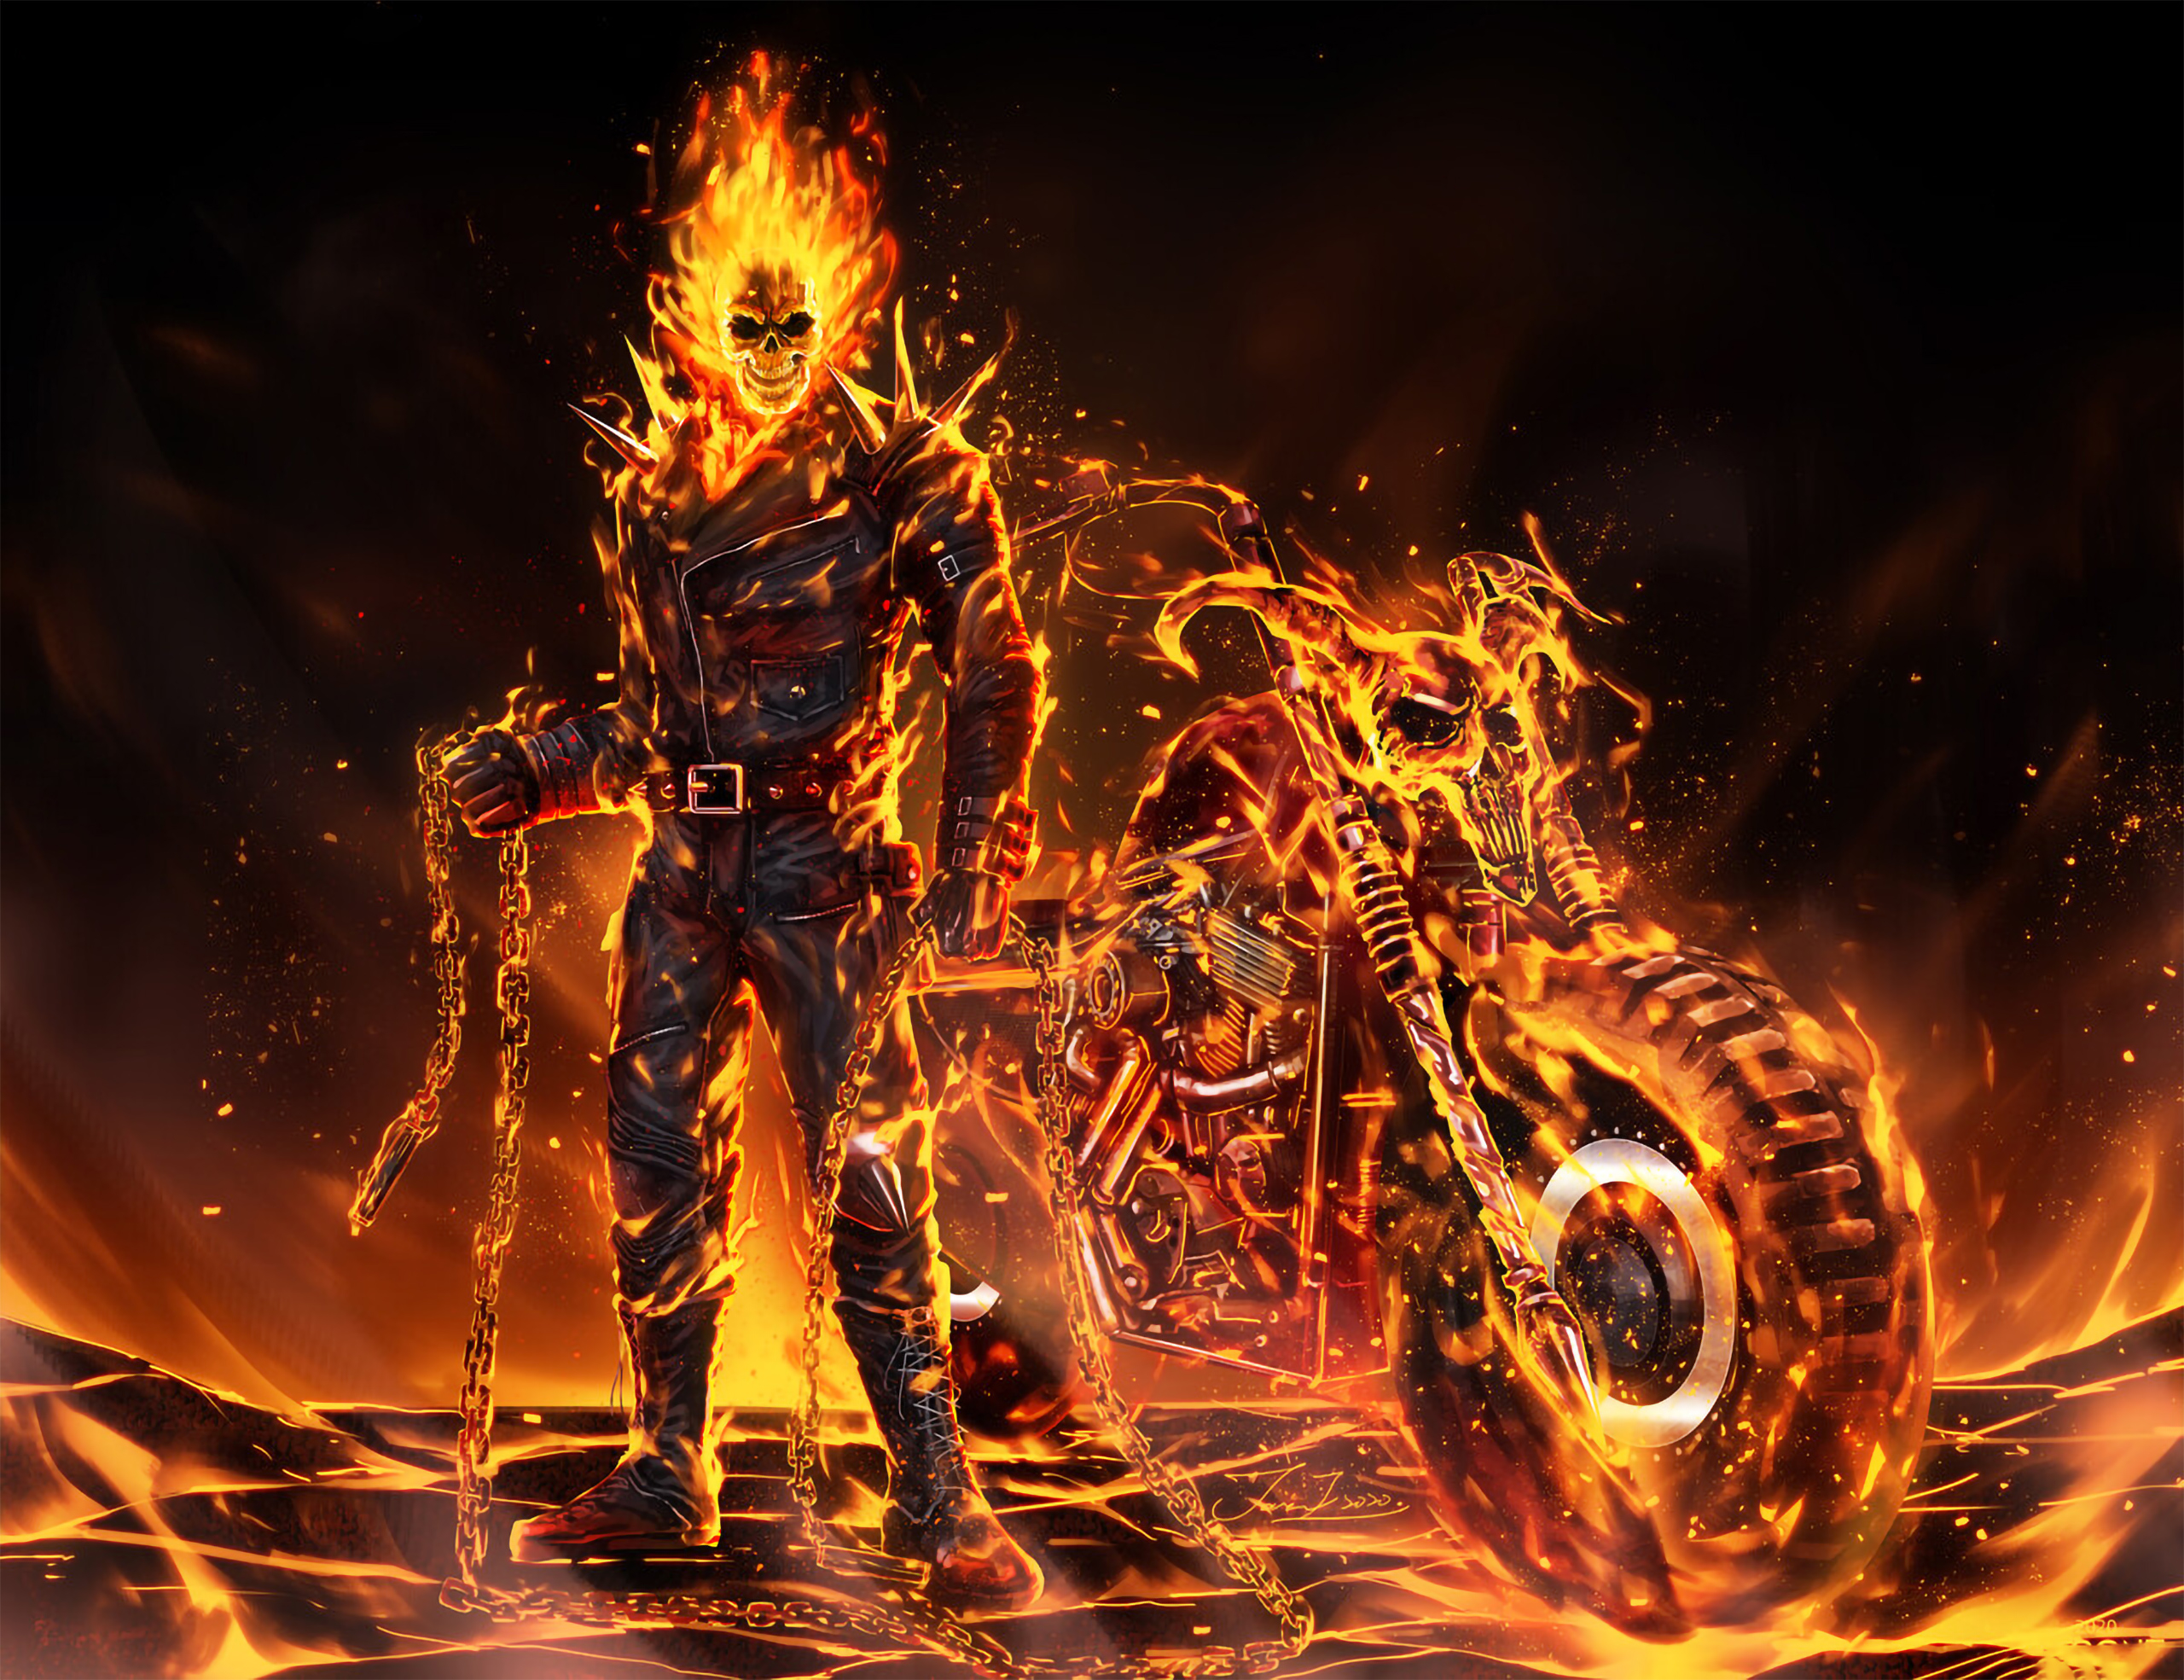 The Best Ghost Rider Images Hd Wallpaper Download Gif